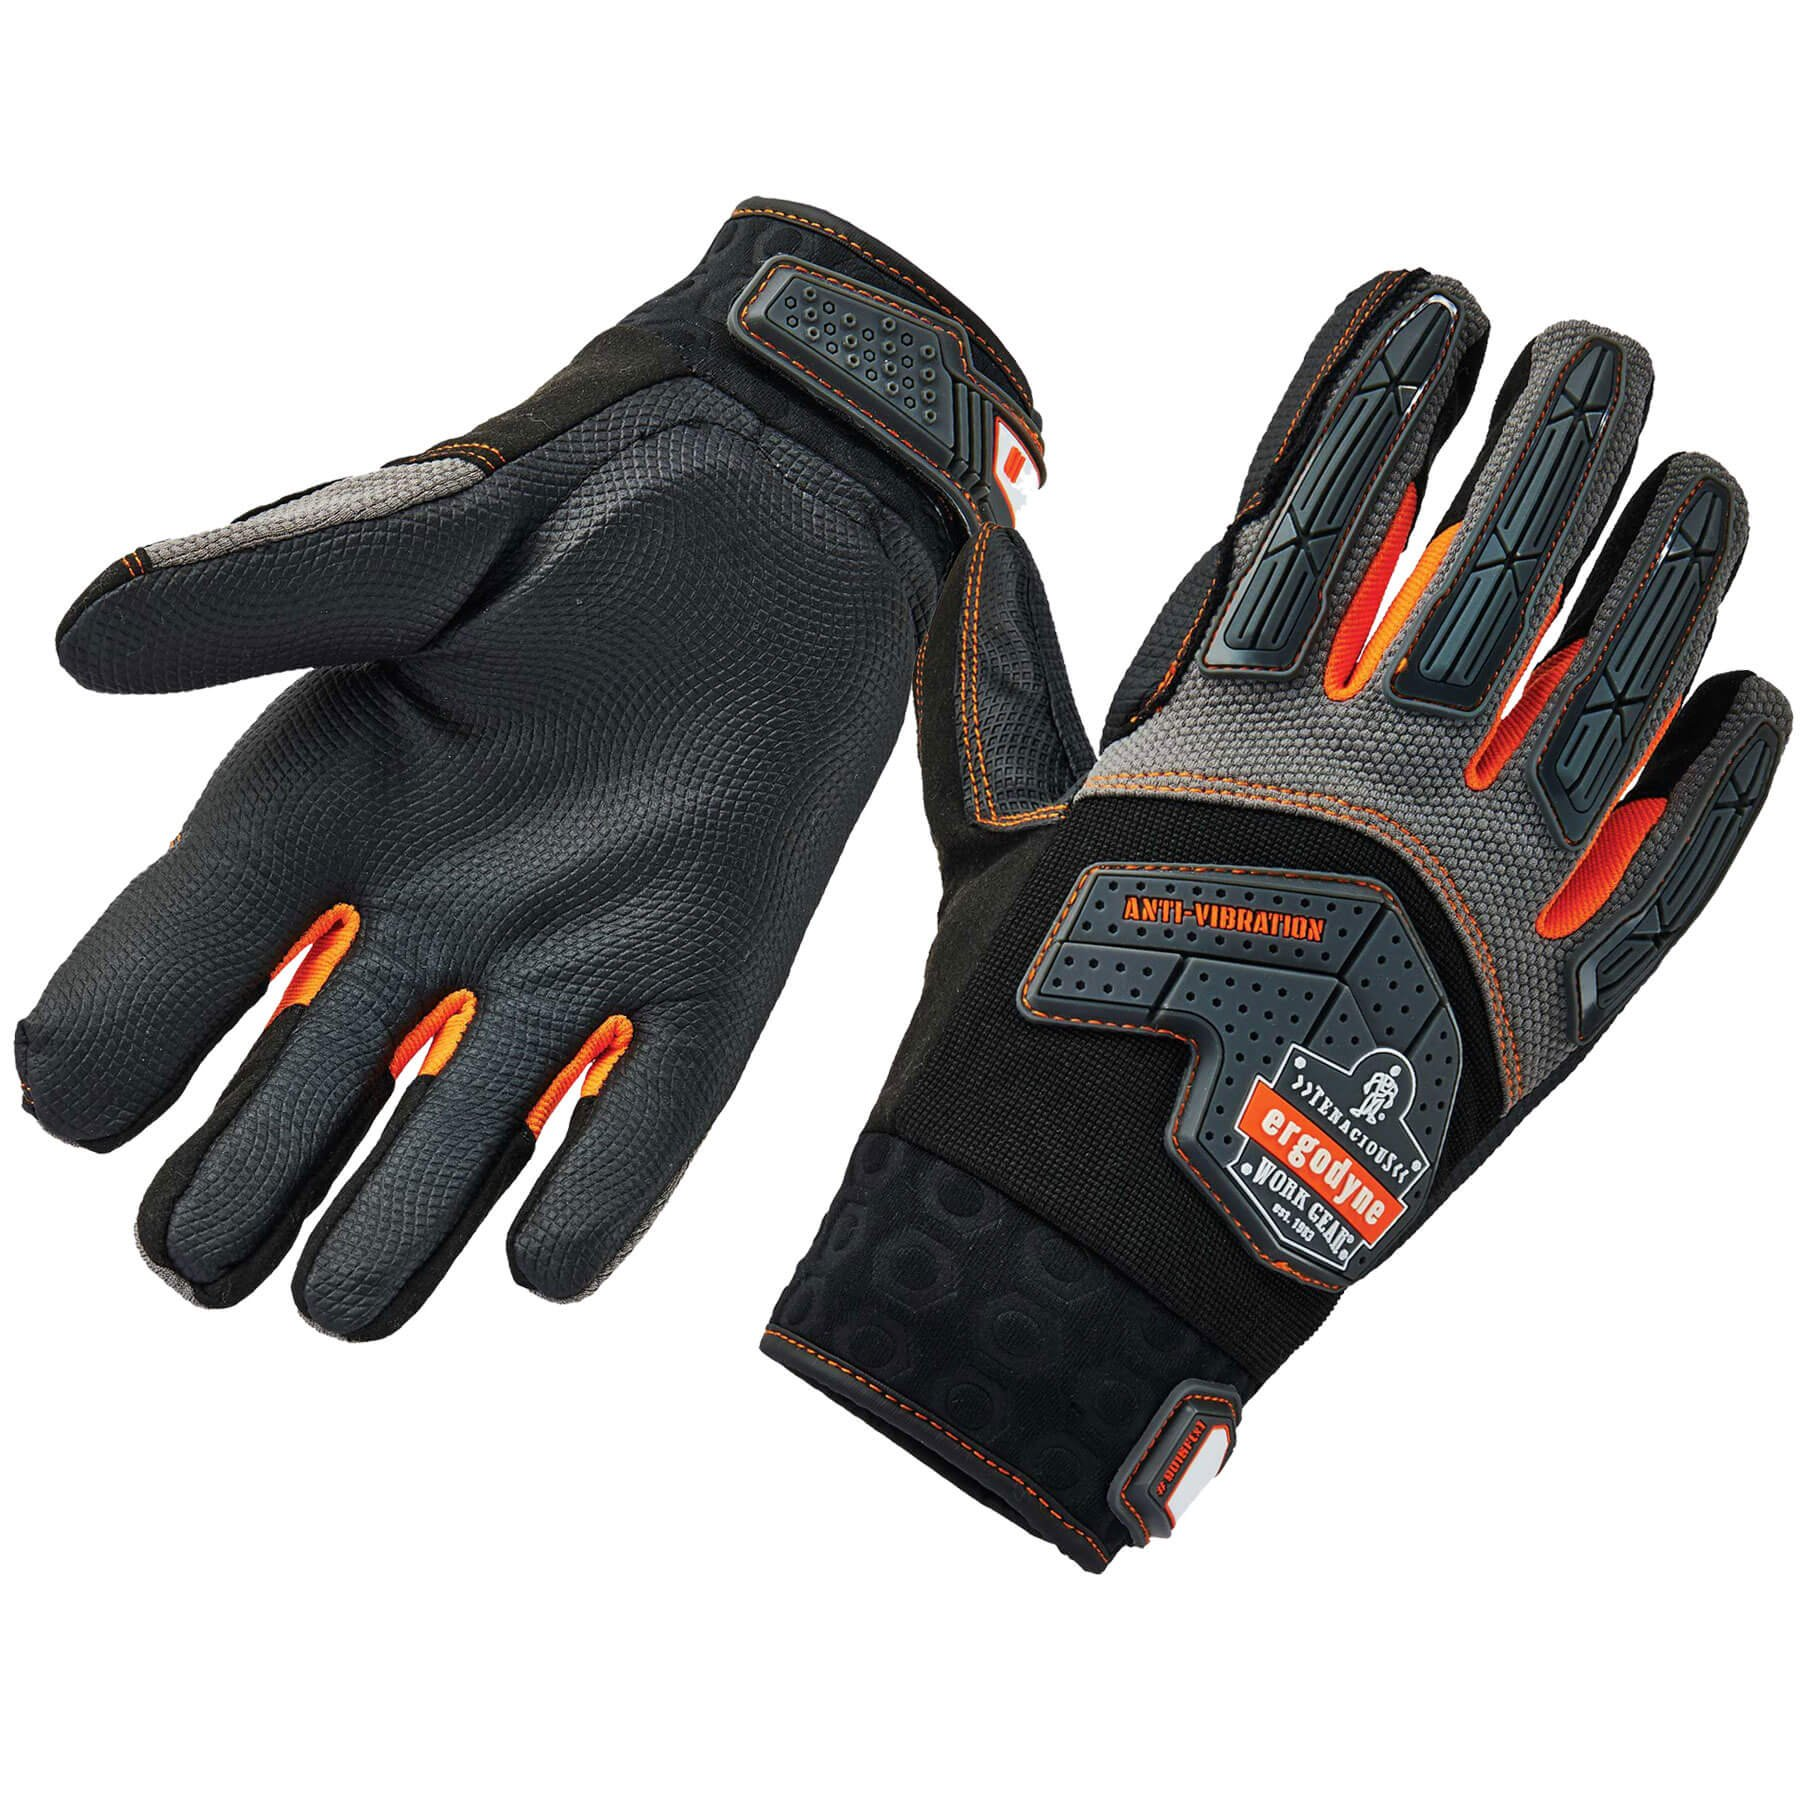 Ergodyne ProFlex 9015F(x) Anti-Vibration Work Gloves, Certified, Large, Black